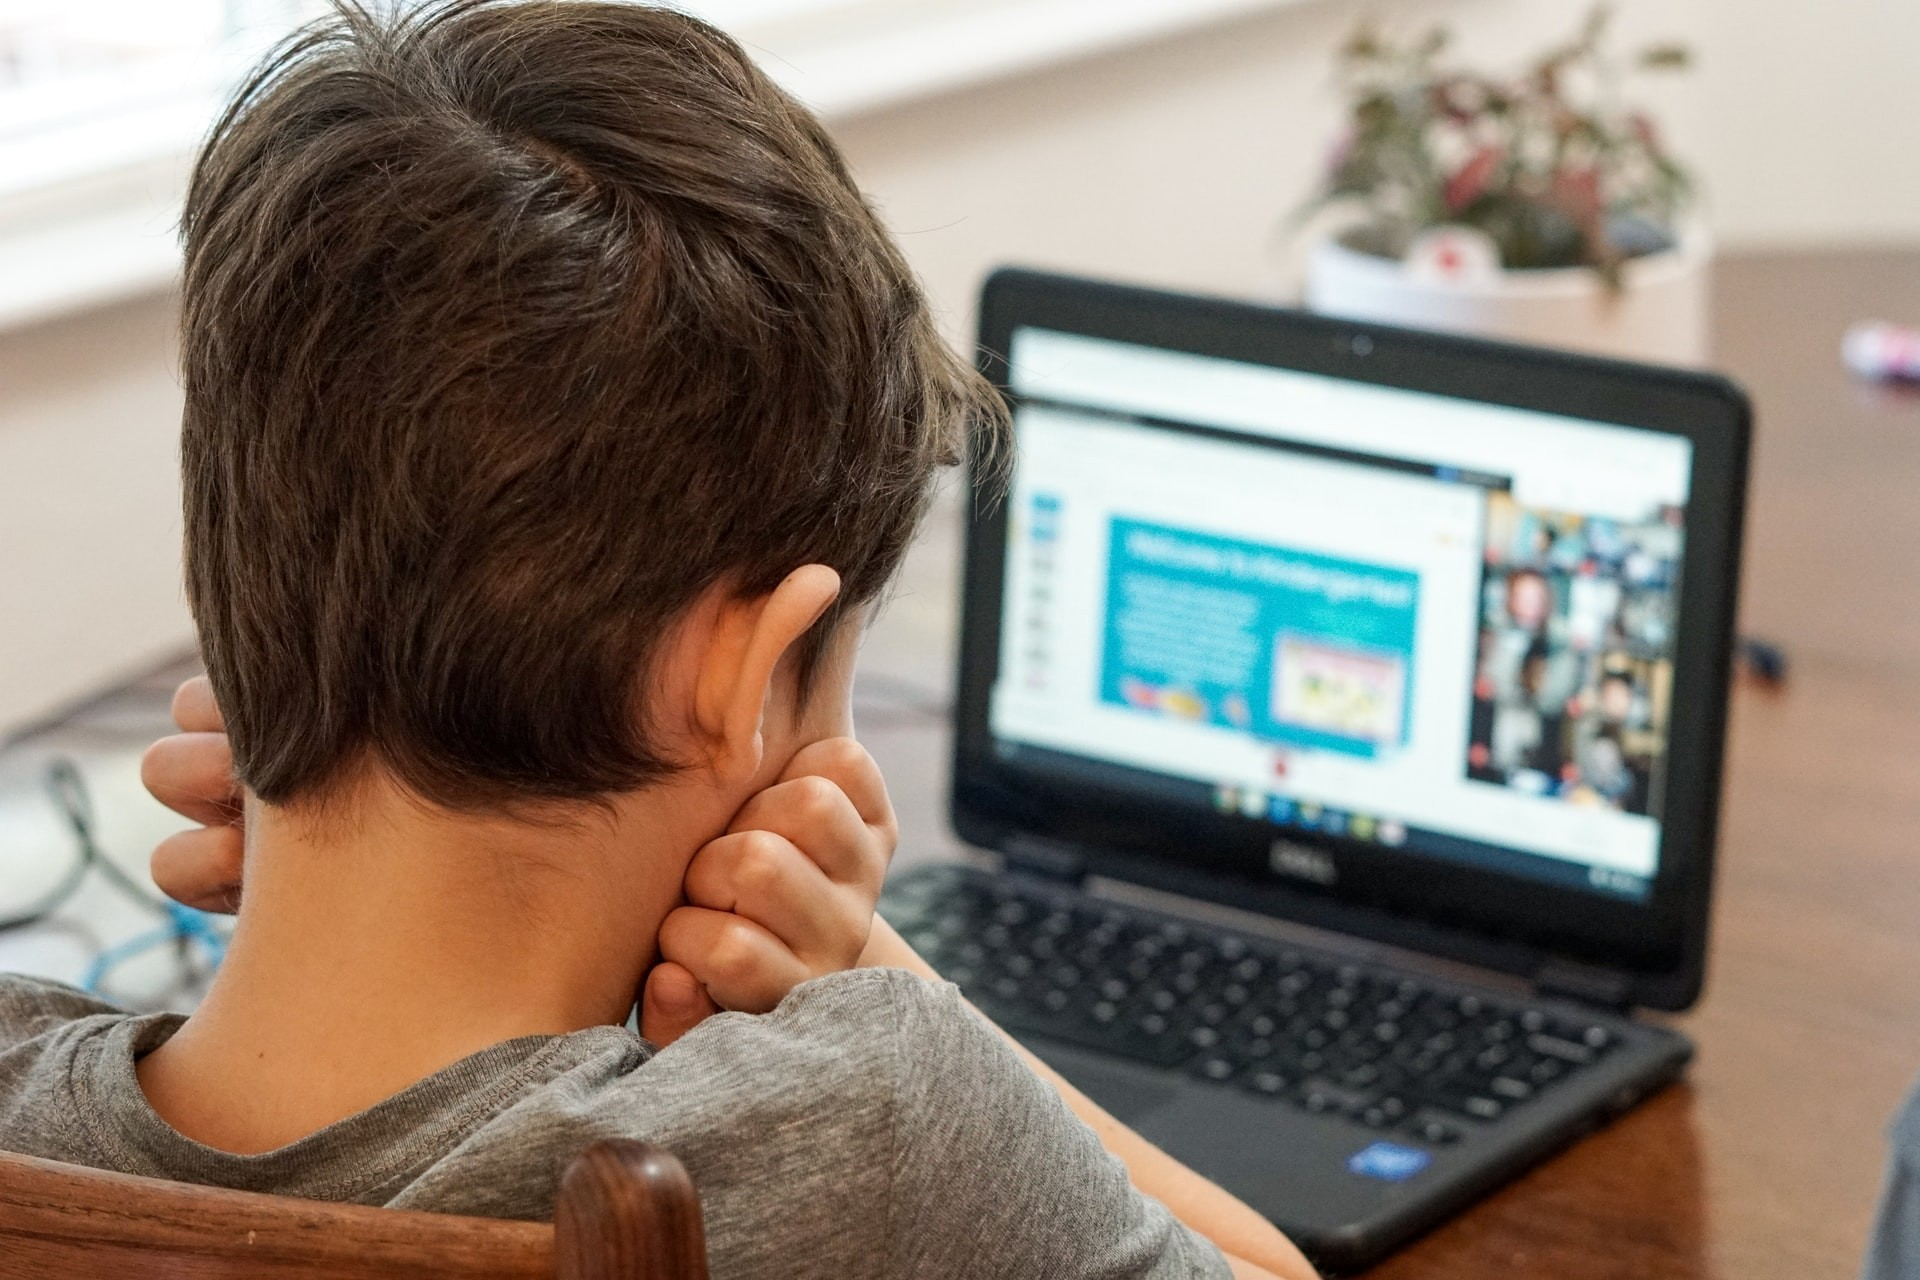 Boy sits at a table with his head in his hands, participating in a lesson with an online learning platform.